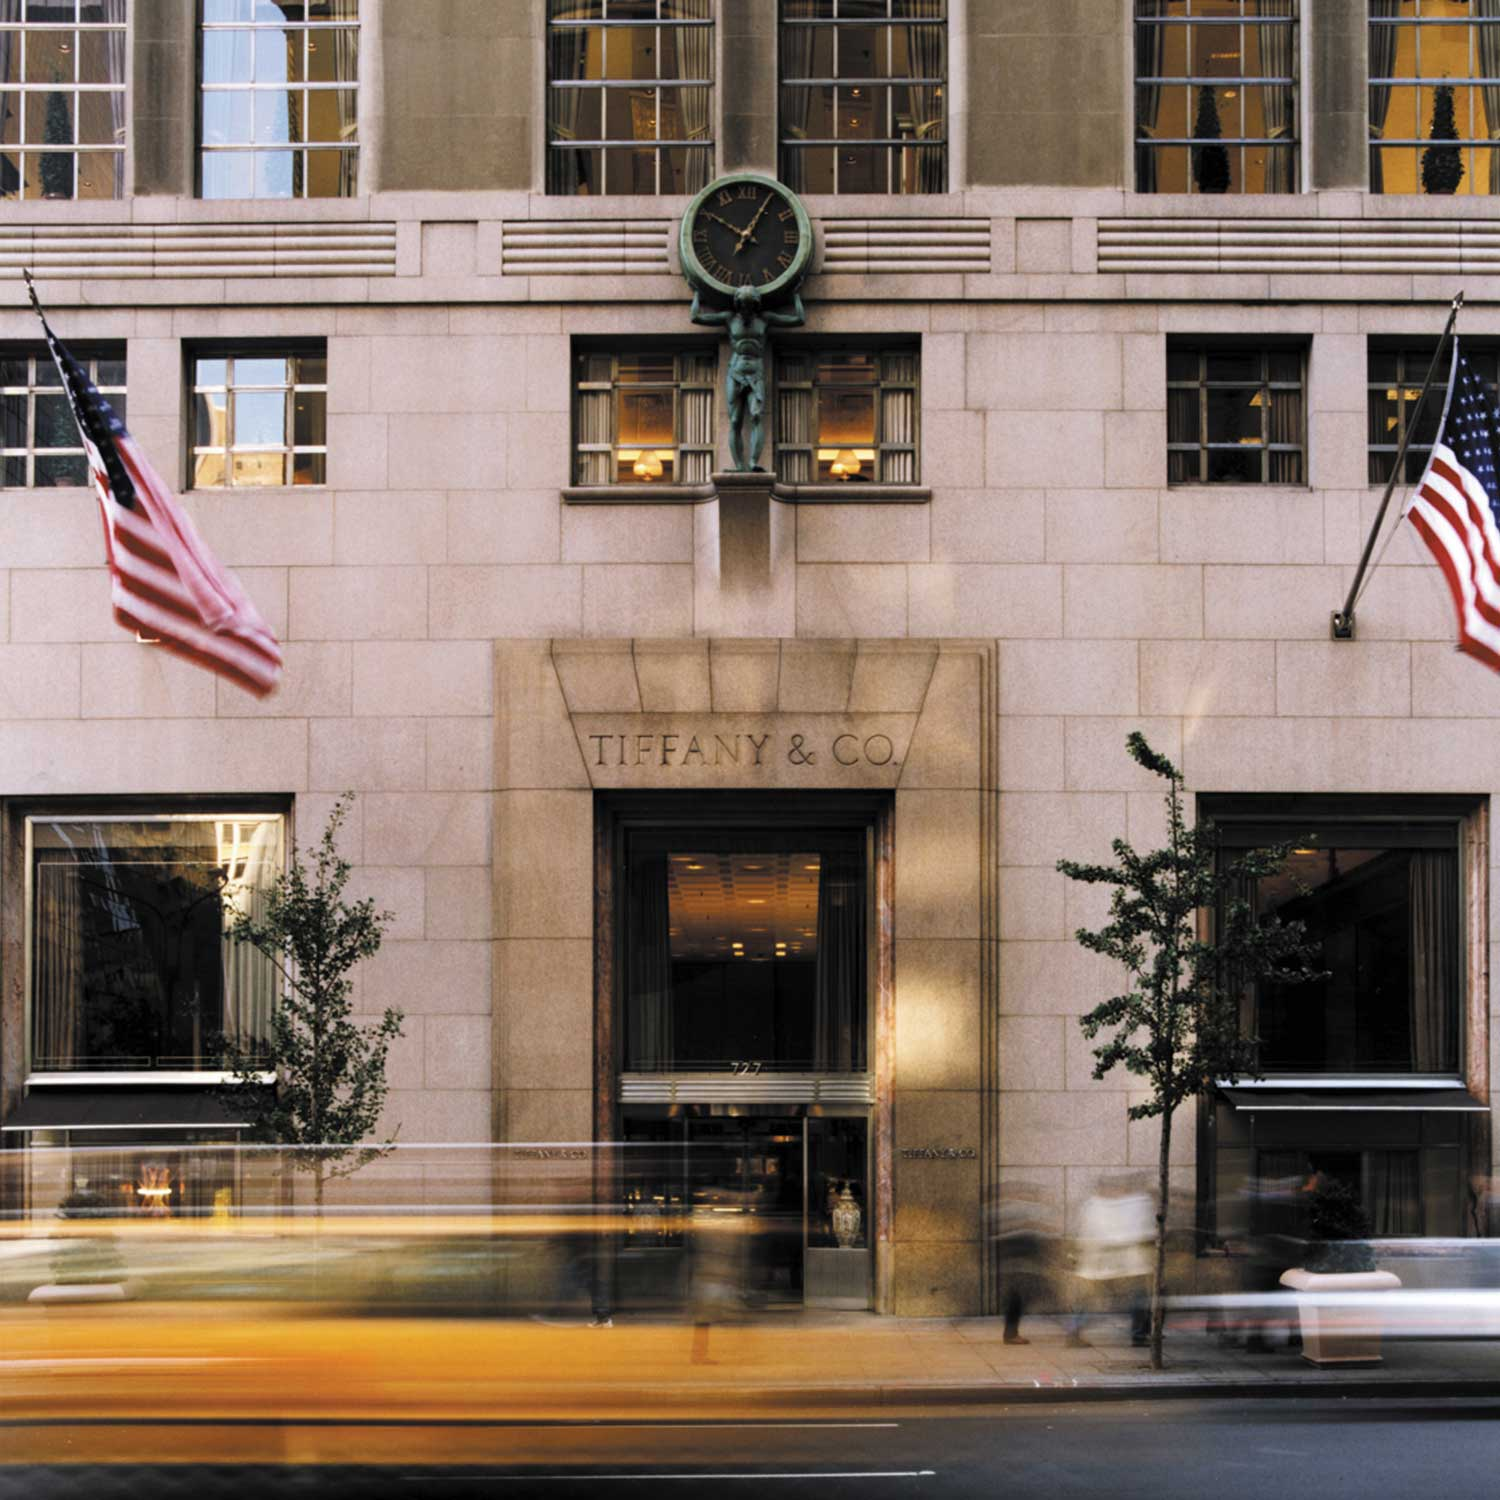 In 1940, Tiffany & Co. moved to its current location at 727 Fifth Avenue, at the corner of Fifty-seventh Street. The granite and limestone building, with Art Deco influences and stainless steel doors, is adorned with a nine-foot bronzed figure of Atlas shouldering a clock (Photography by © Andrew Bordwin)